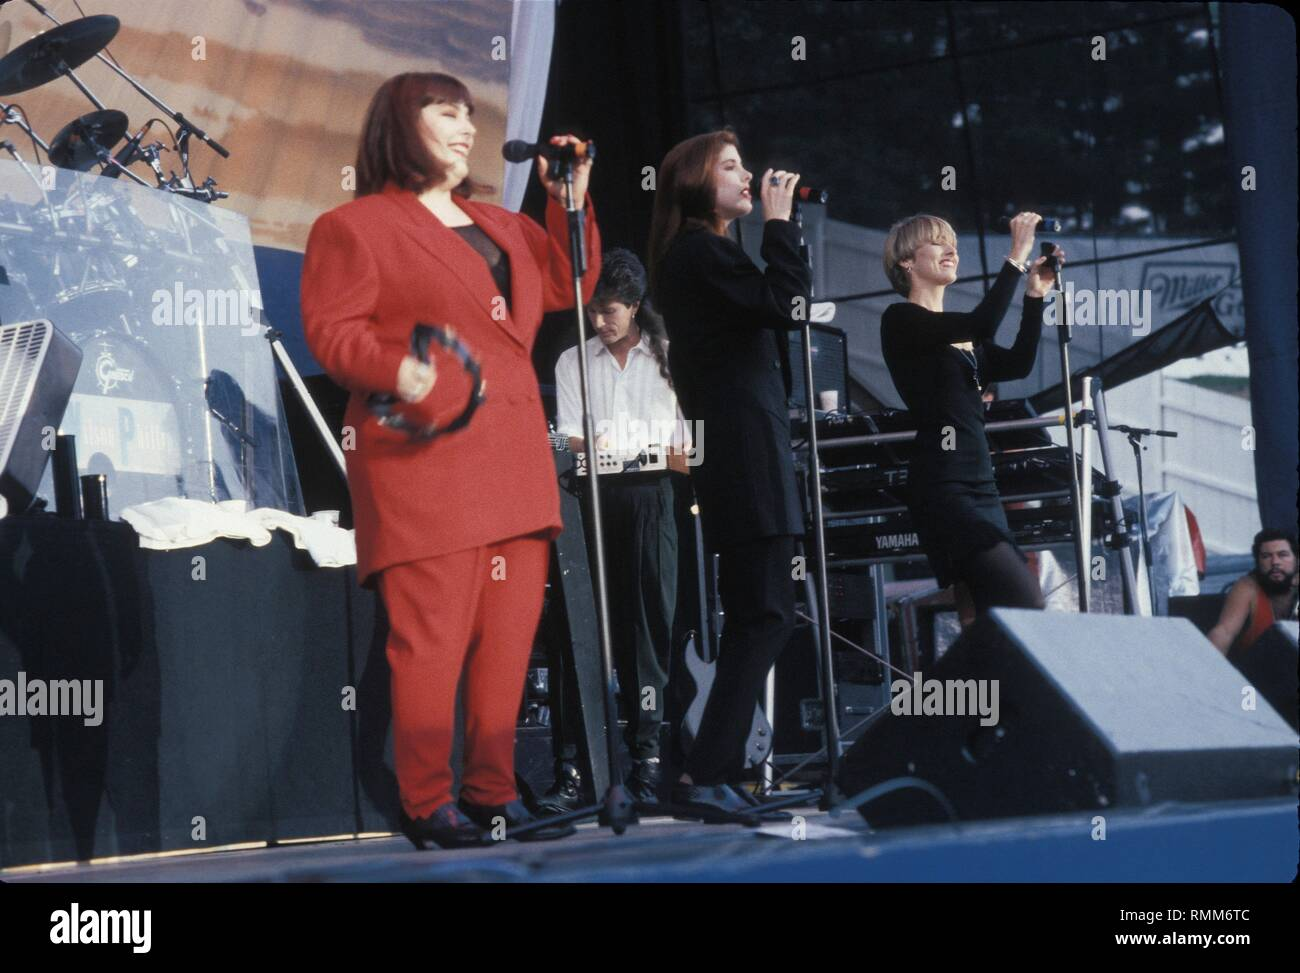 The vocal group Wilson Phillips, consisting of Carnie and Wendy Wilson and Chynna Phillips, is shown performing on stage during a 'live' concert appearance. - Stock Image